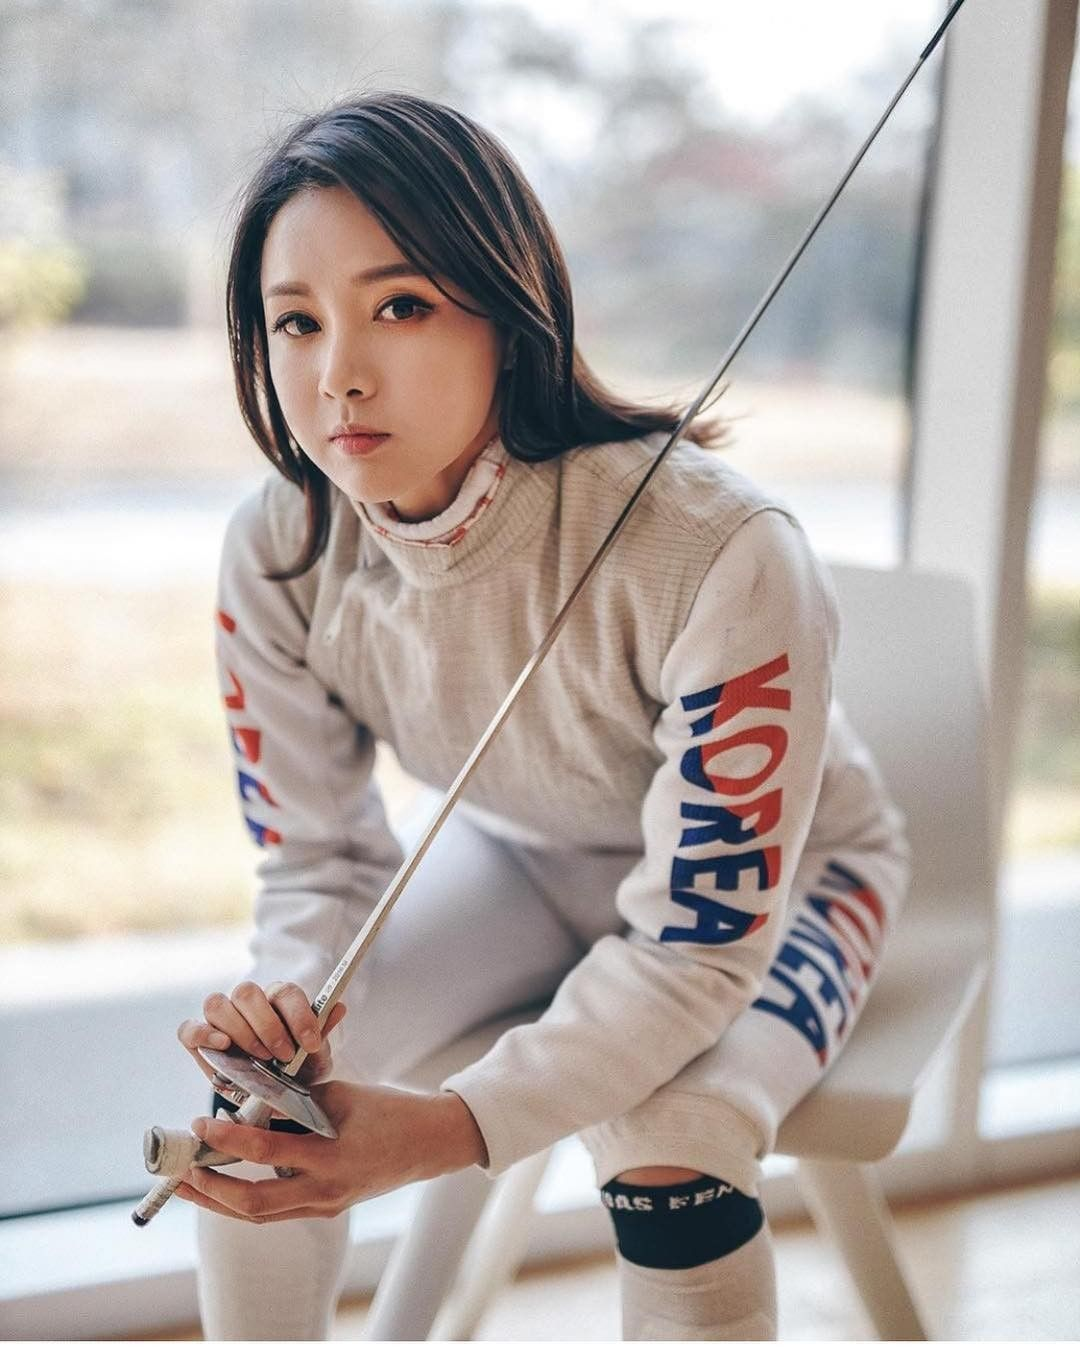 Pin By Brynnamon Roll On Fencing Beautiful Athletes Olympic Fencing Fencing Sport